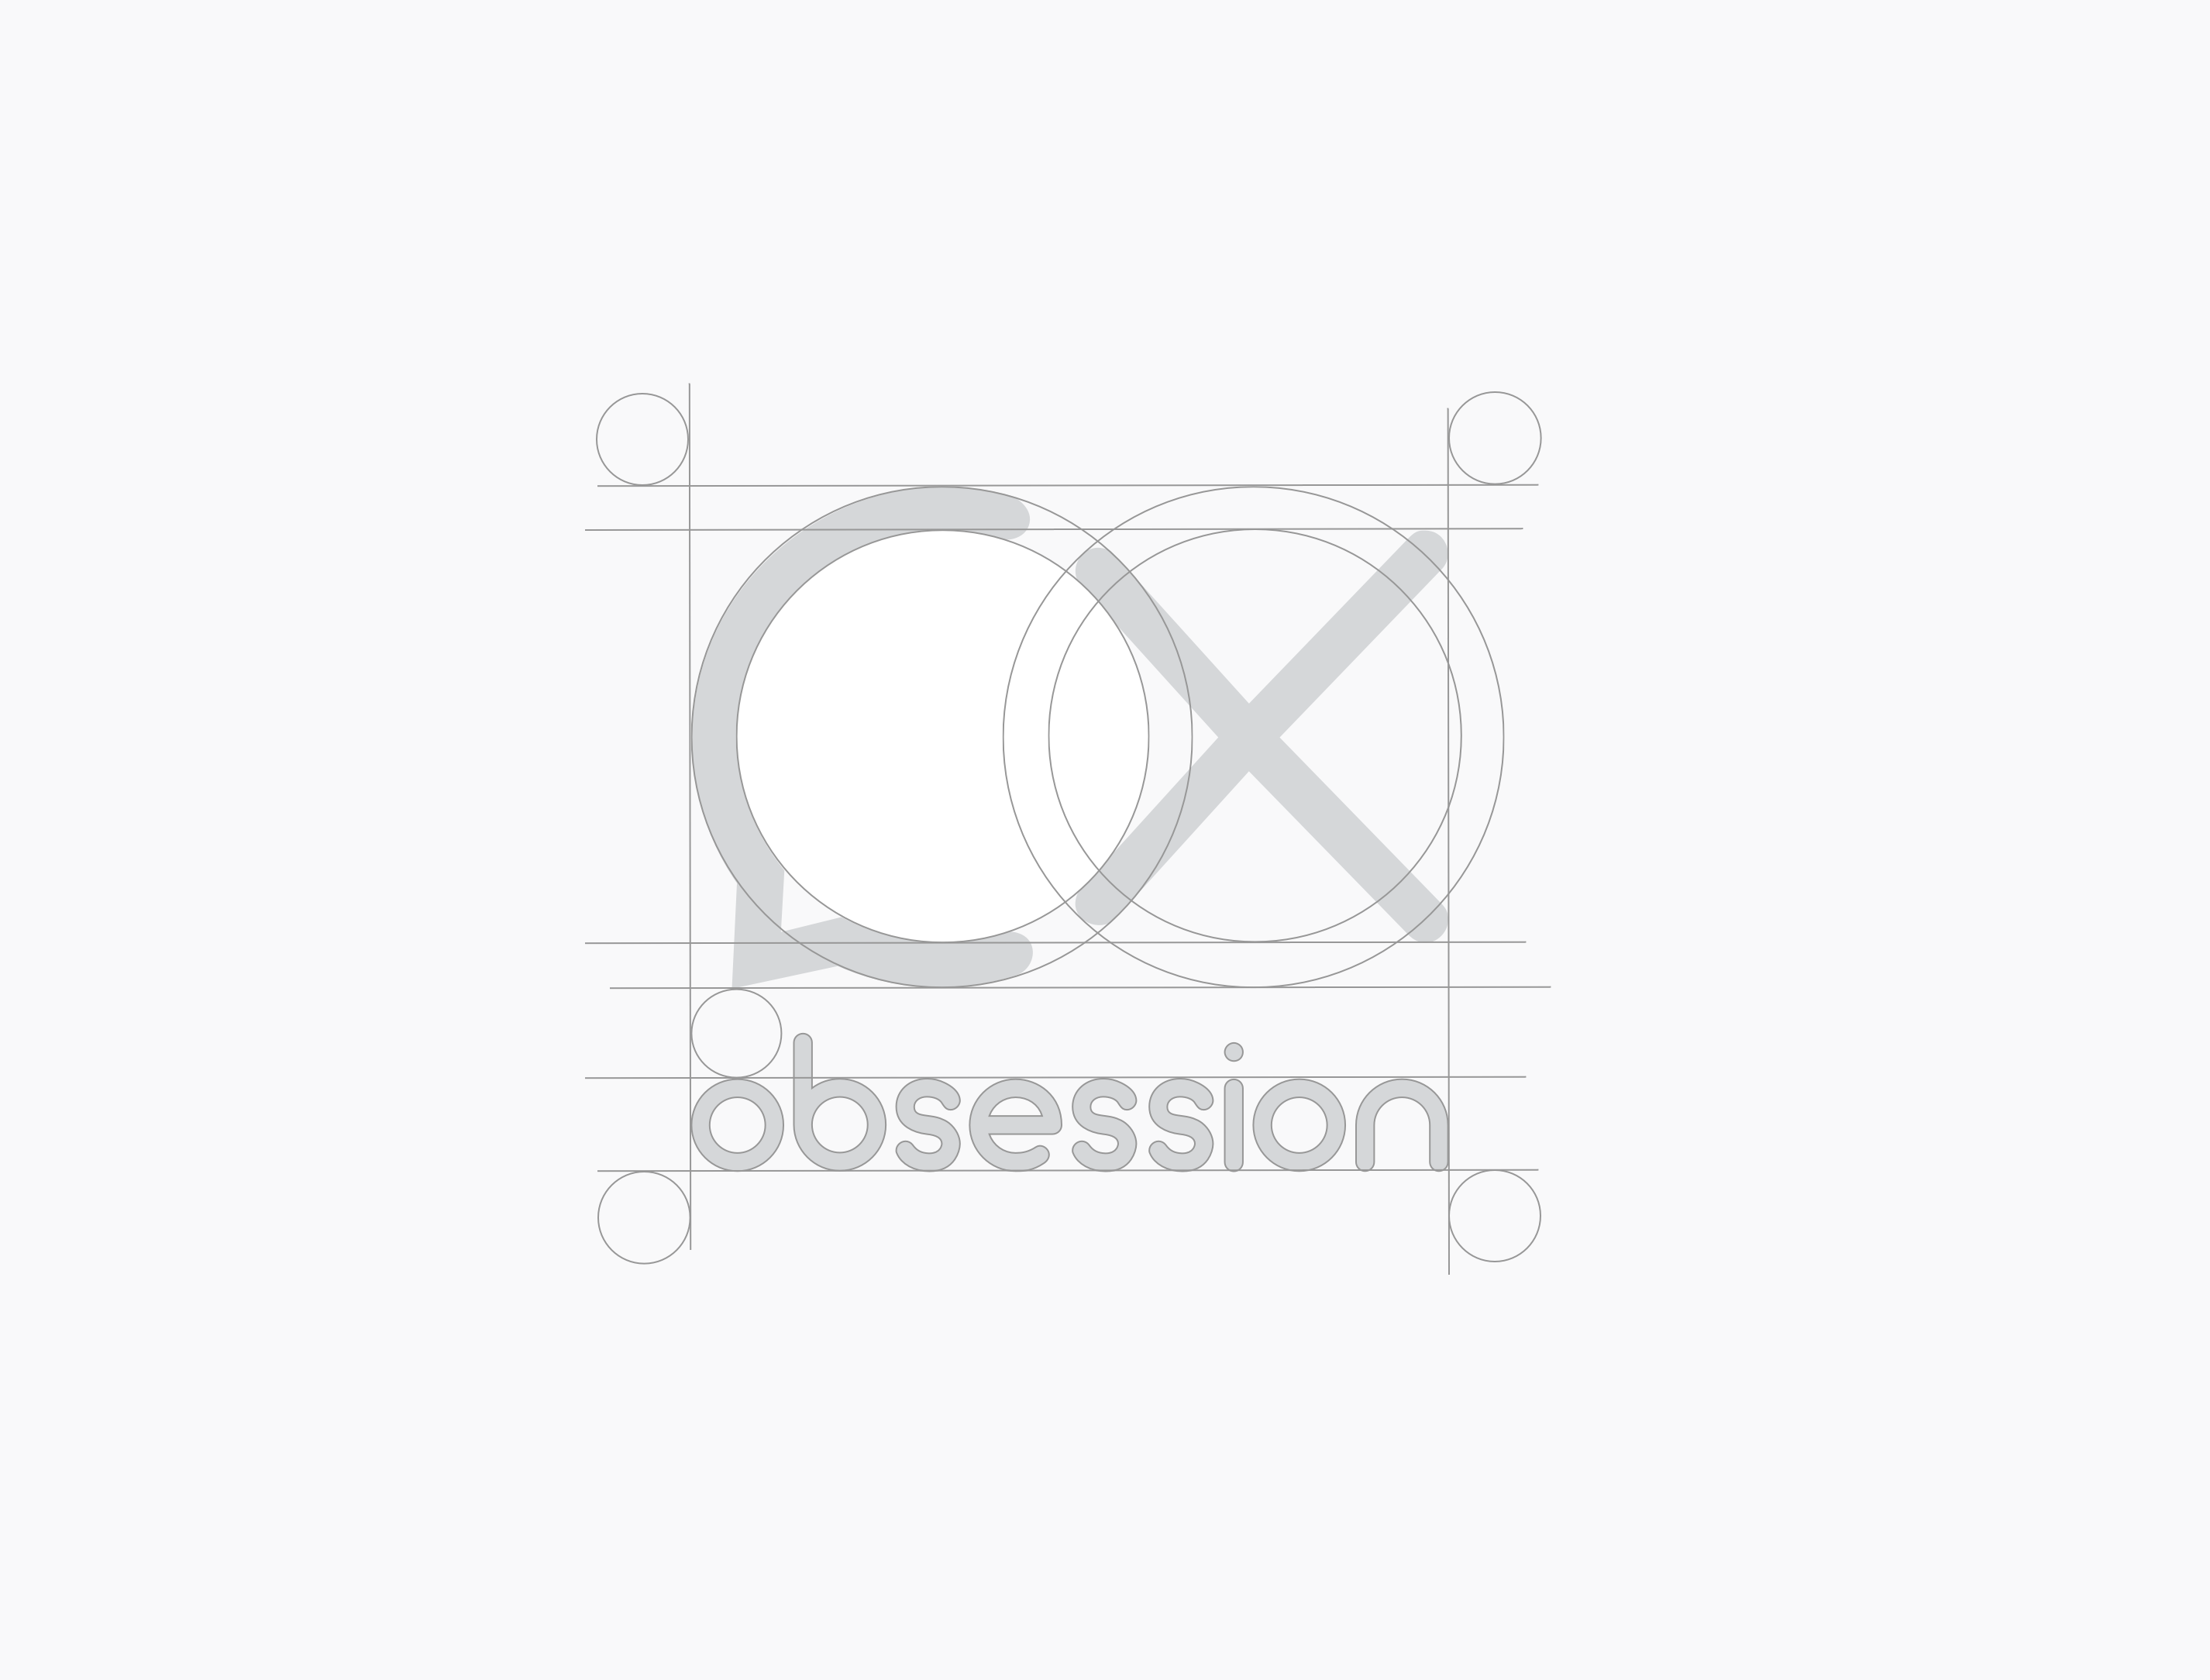 cx_obsession_logo_construction-1